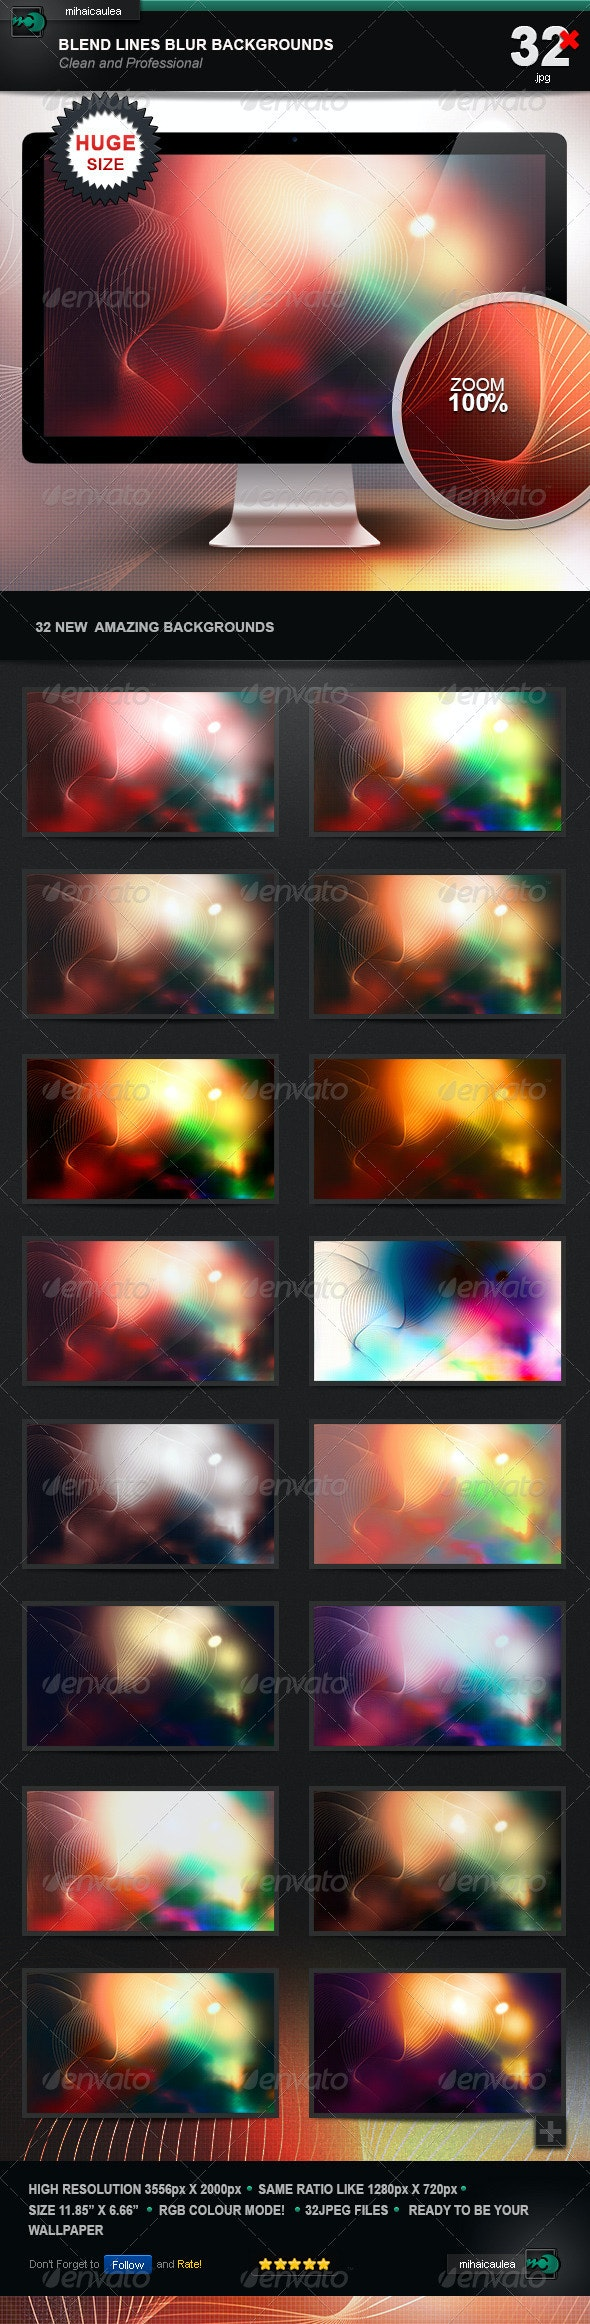 Blend Lines Blur Backgrounds - Abstract Backgrounds